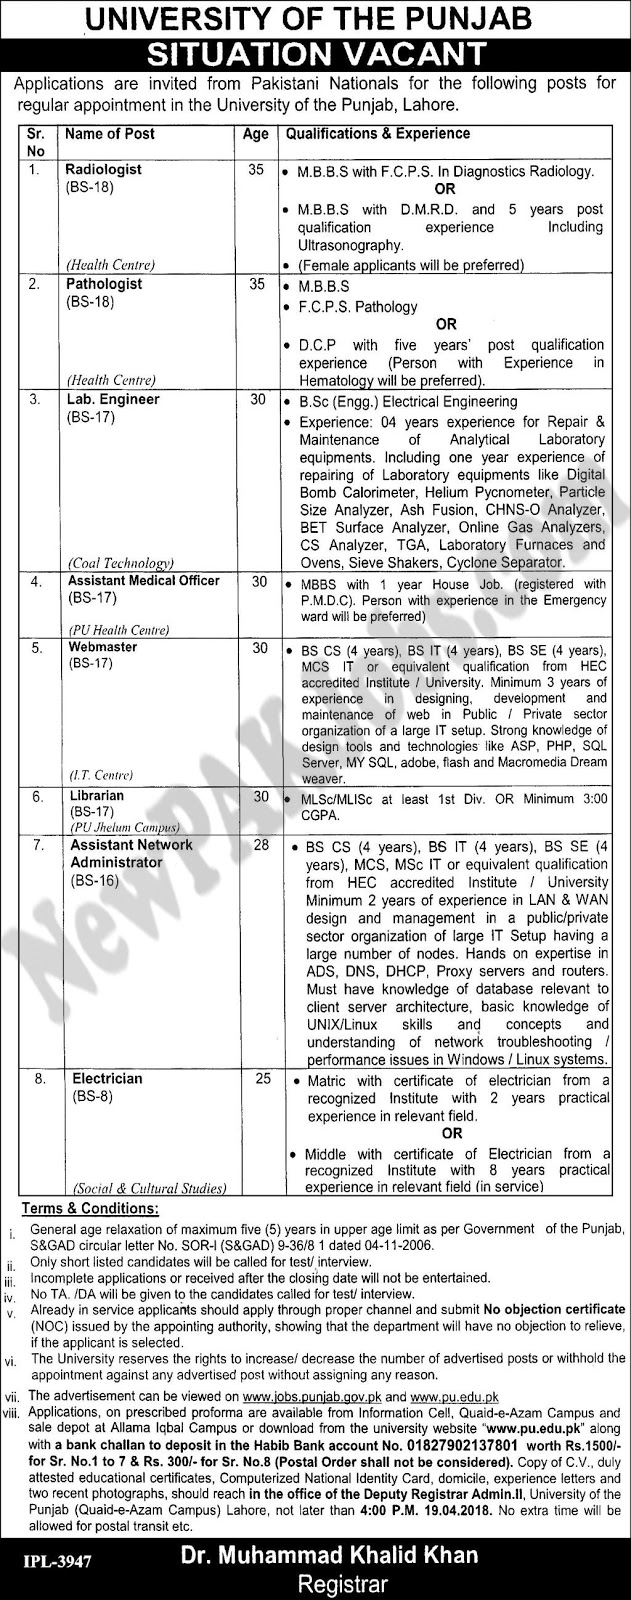 Latest New PU Jobs in University of the Punjab